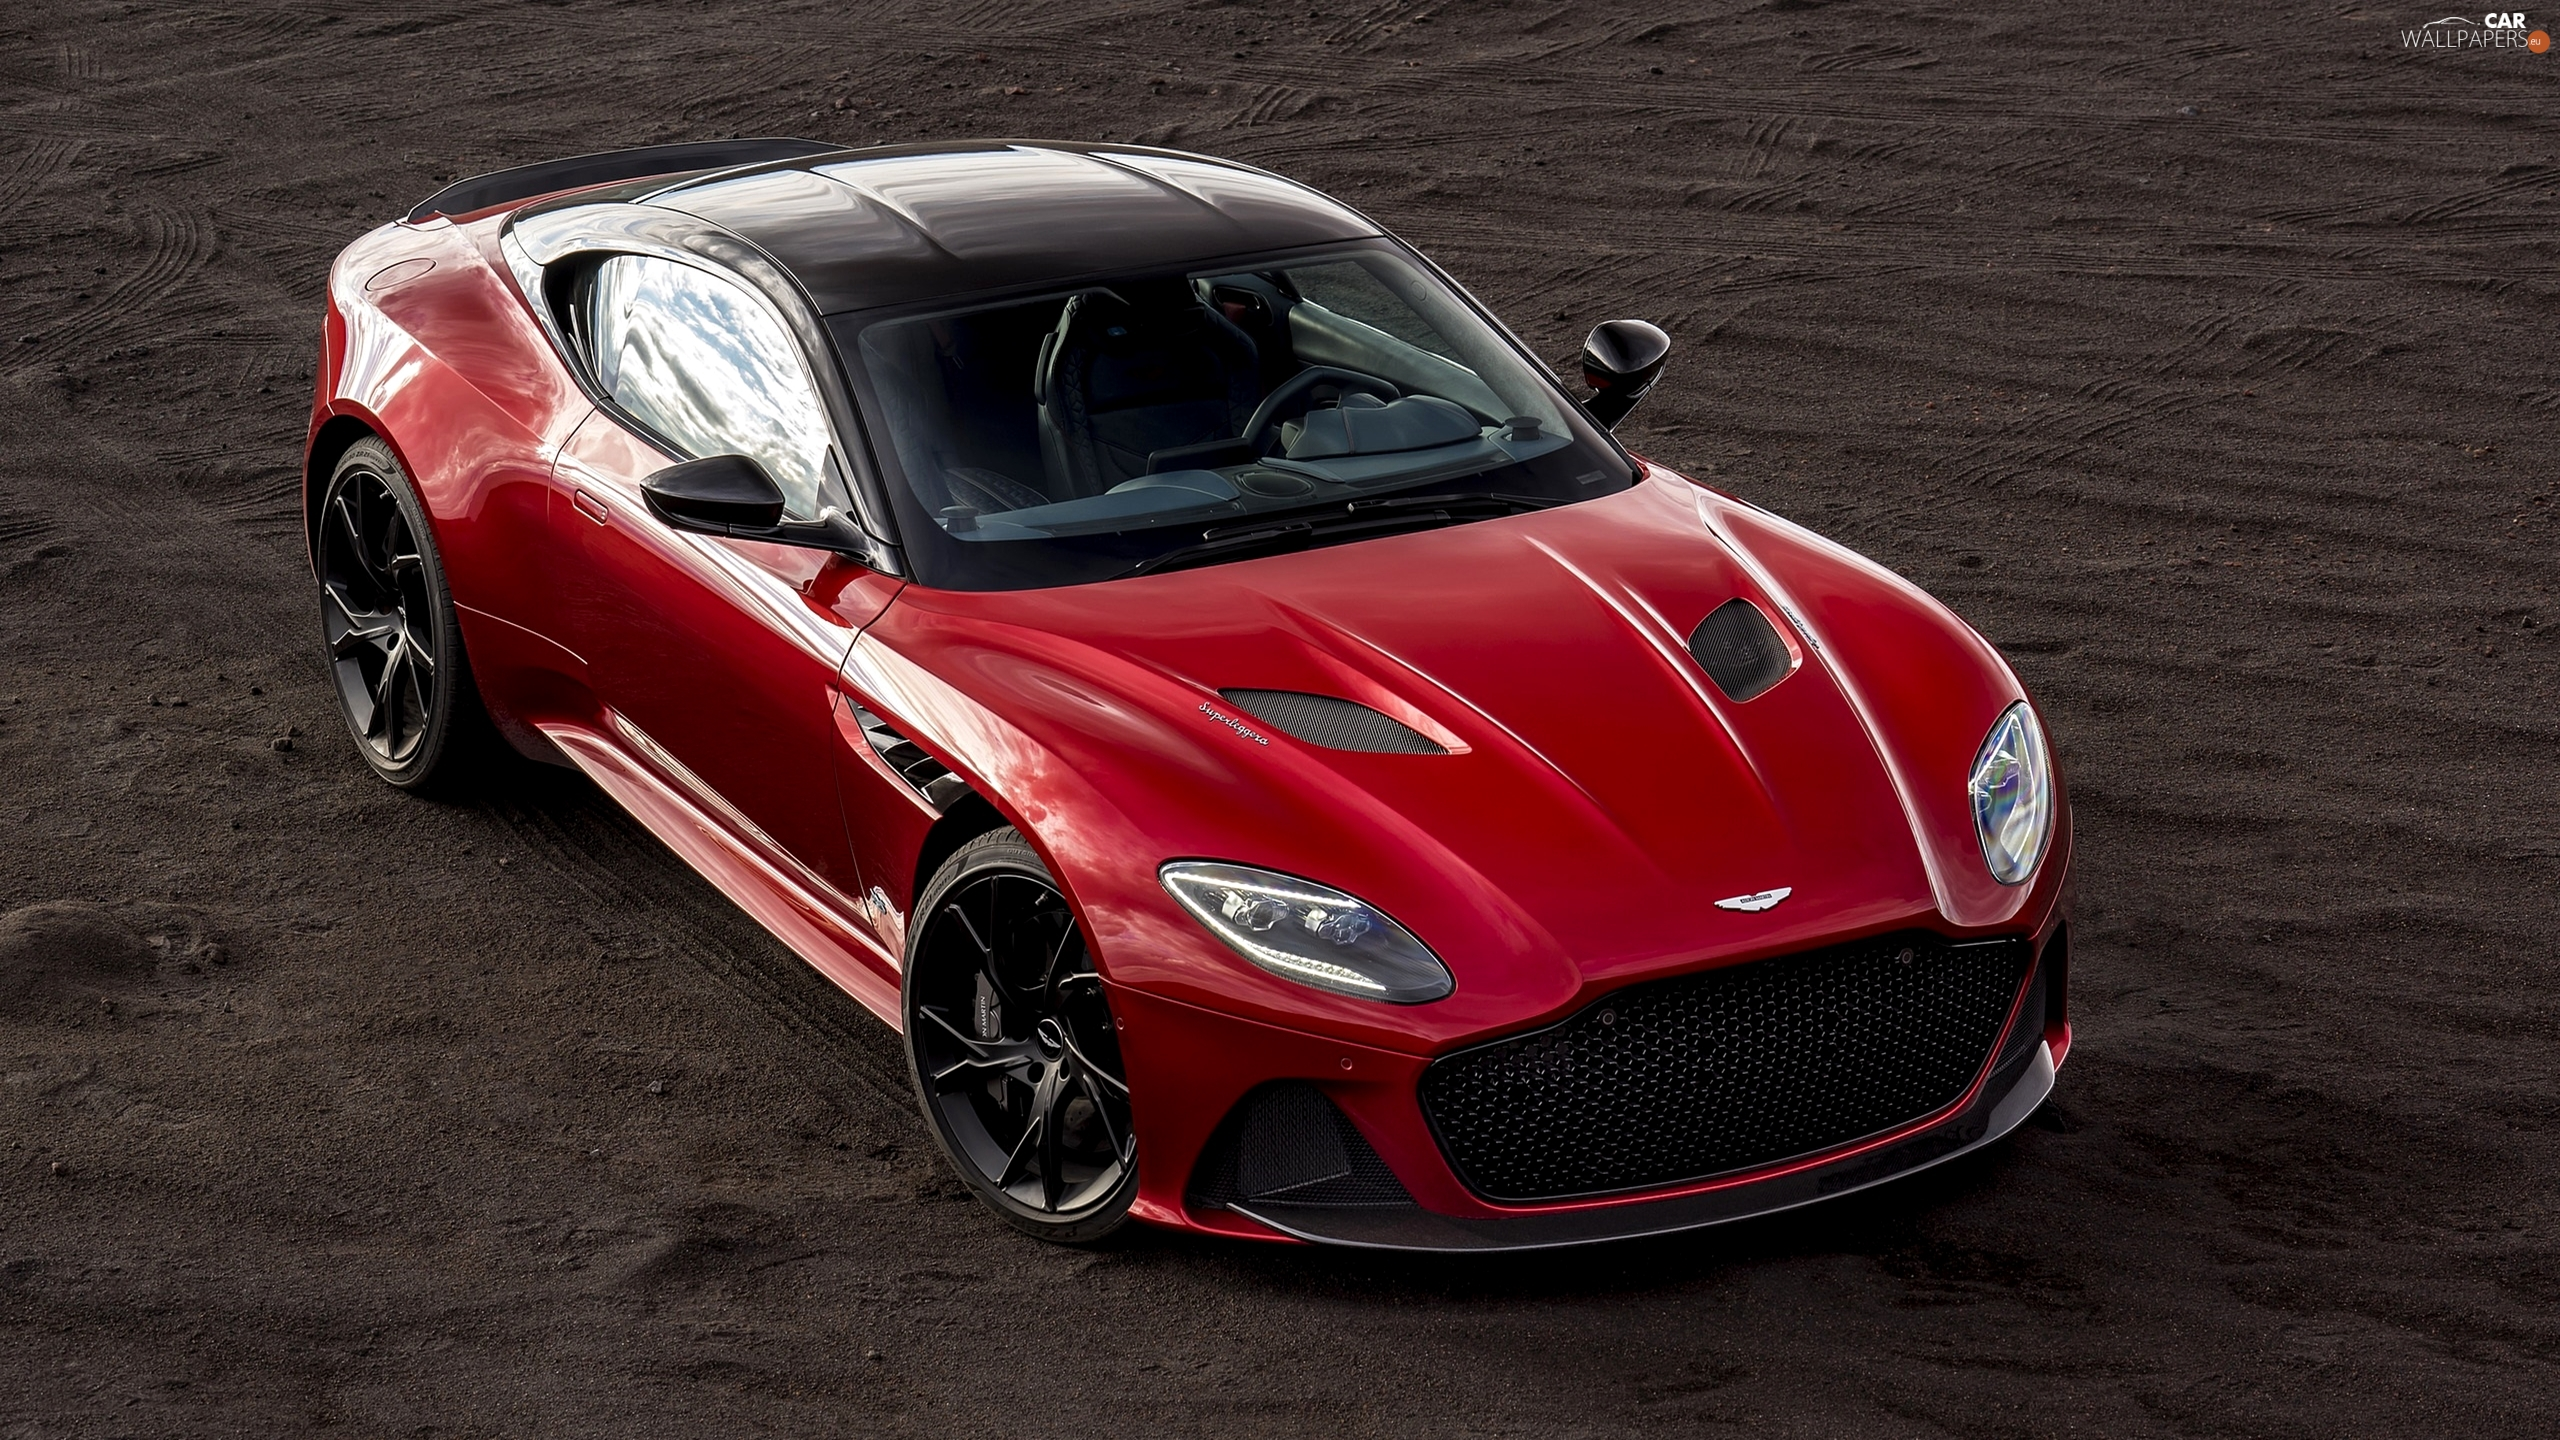 Red, Aston Martin DBS Superleggera